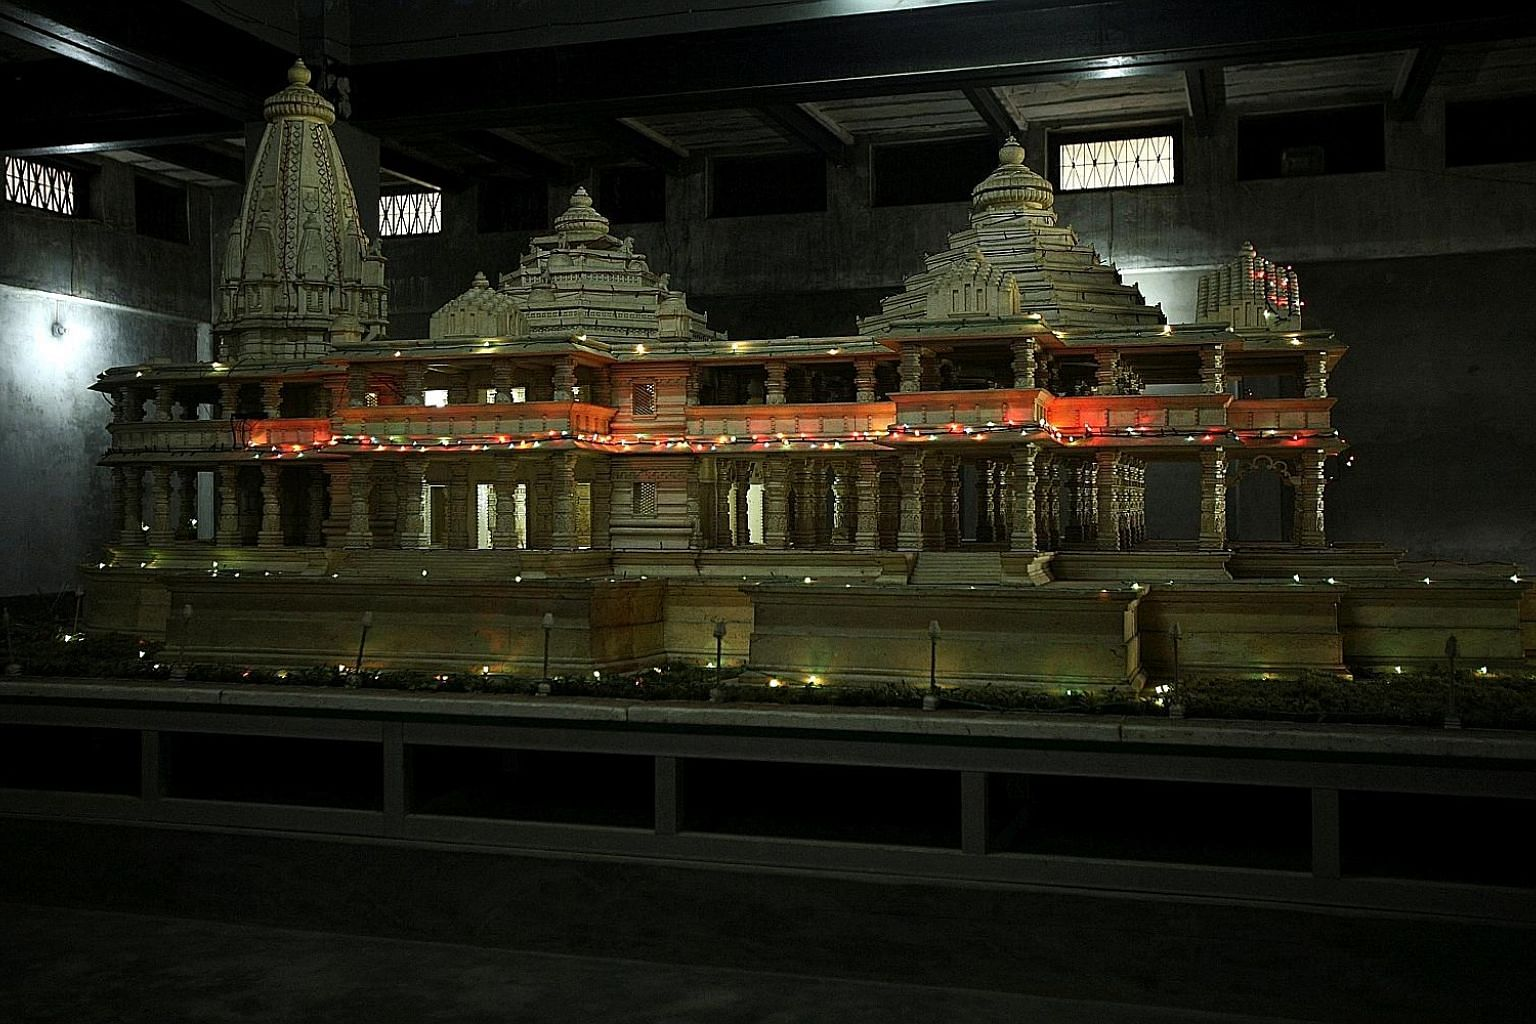 A model of a proposed Ram temple which Hindus want to build on the site of the demolished Babri Mosque in the northern Indian town of Ayodhya. Hindu mobs demolished the mosque in 1992, sparking communal riots.